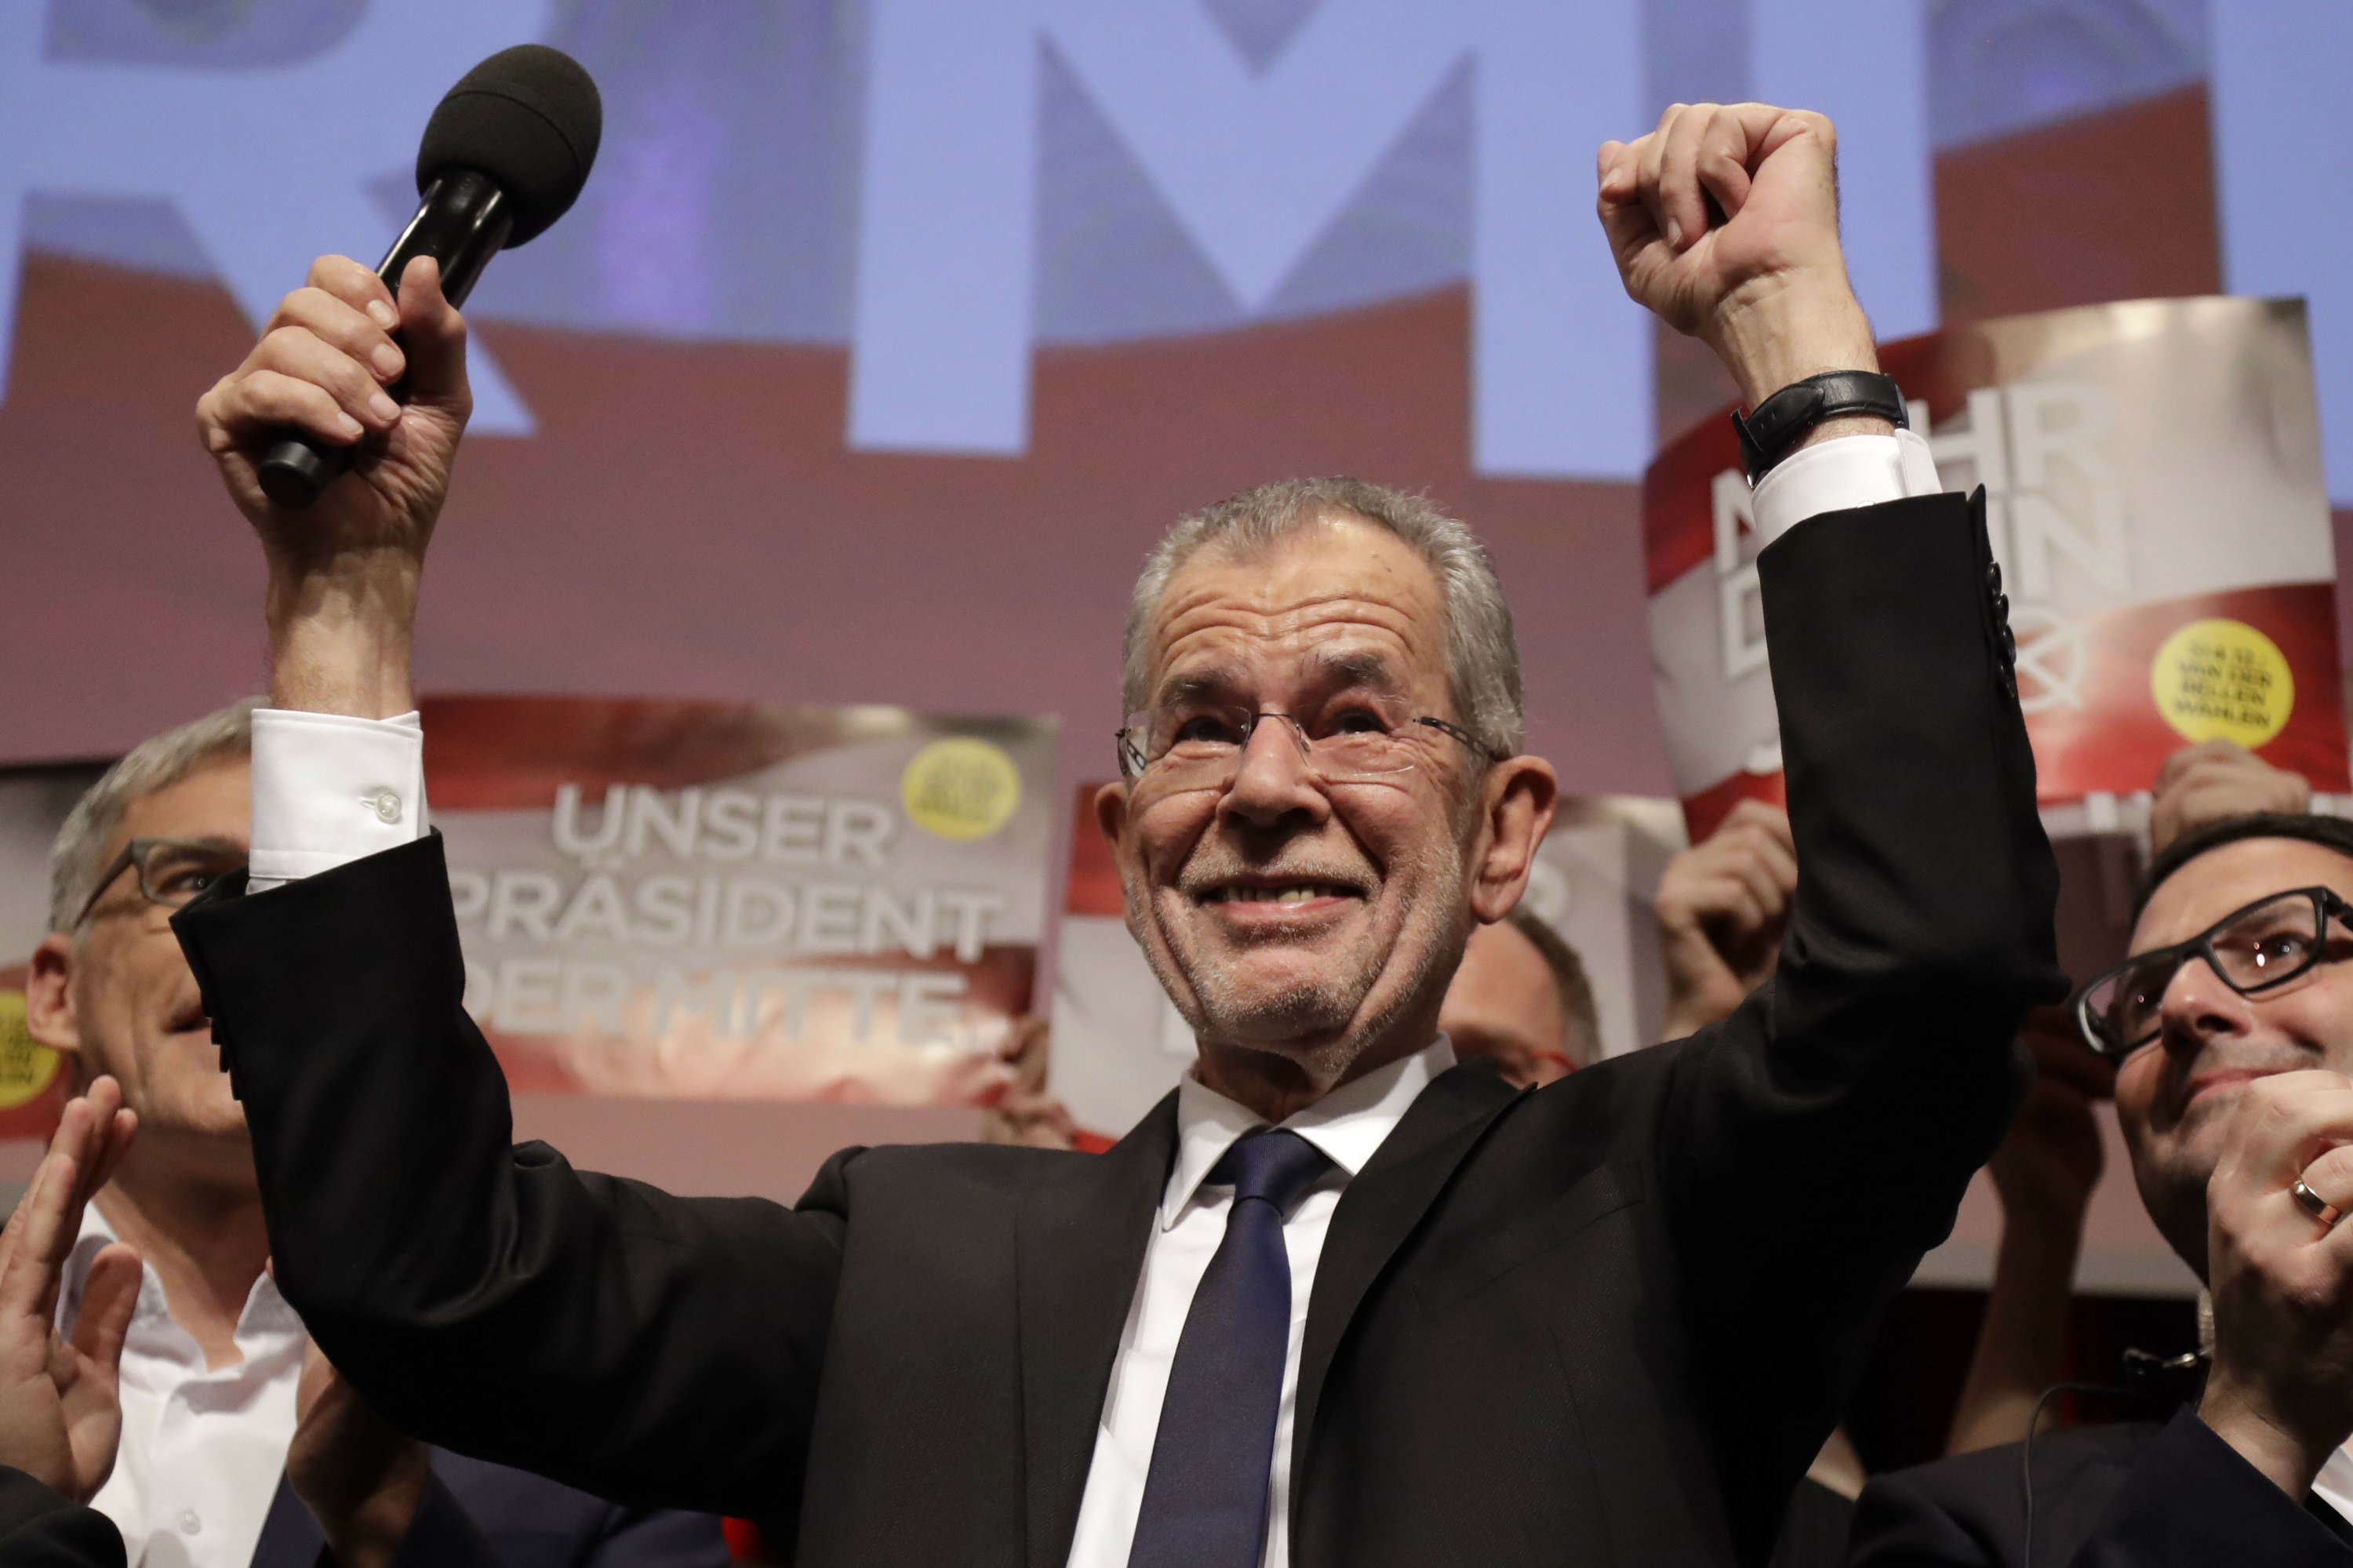 Mainstream relief as leftist candidate wins in Austria